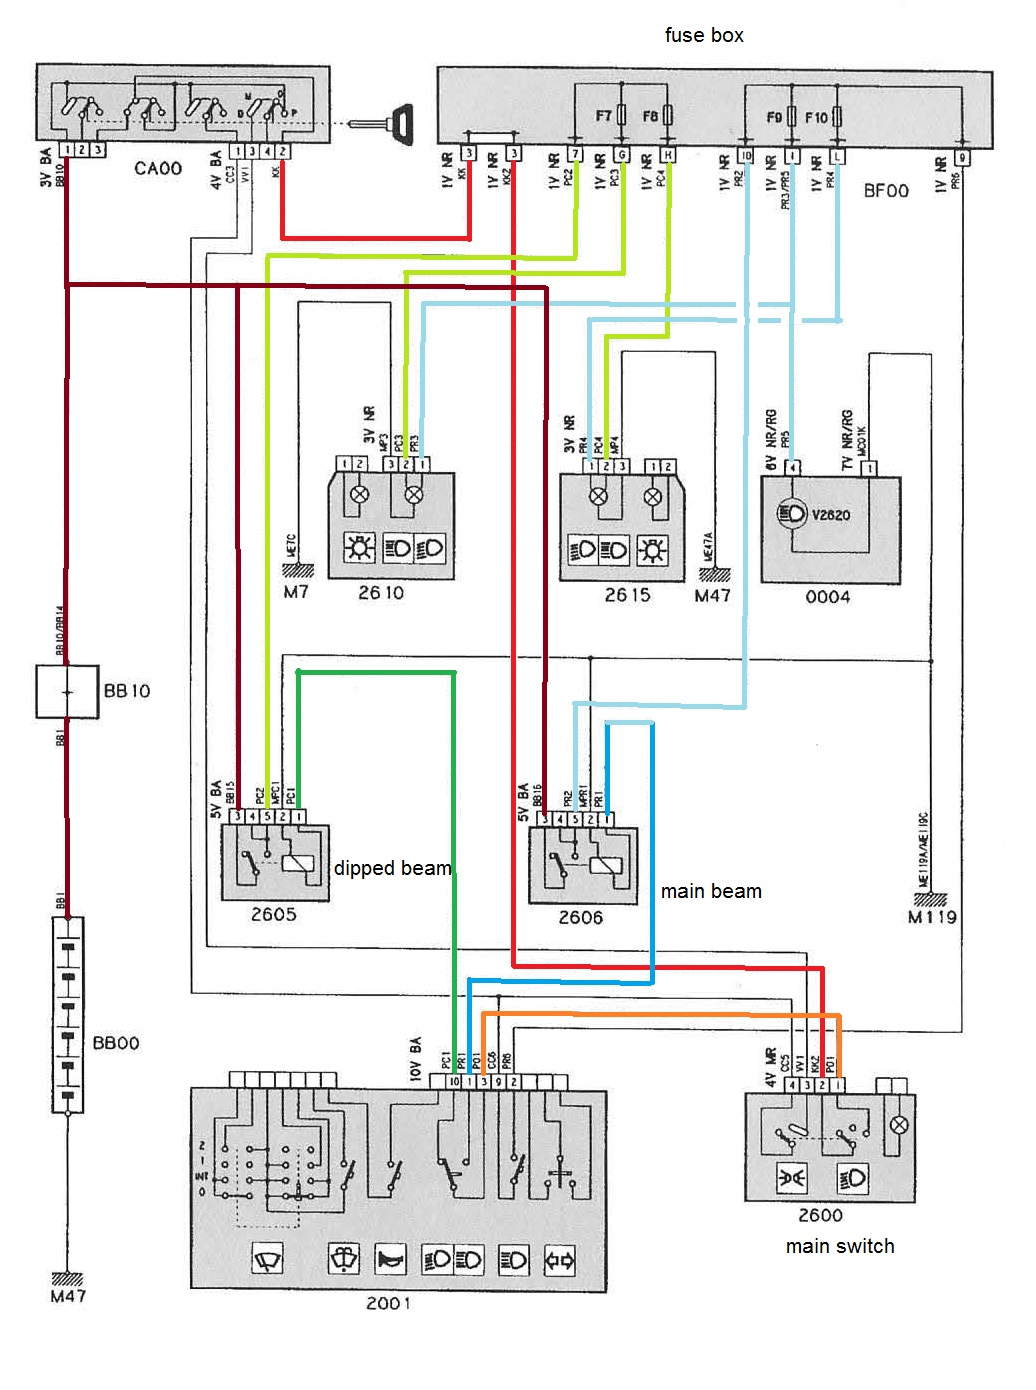 Click image for larger version  Name:Ducato-230-wiring.jpg Views:23 Size:314.3 KB ID:174804